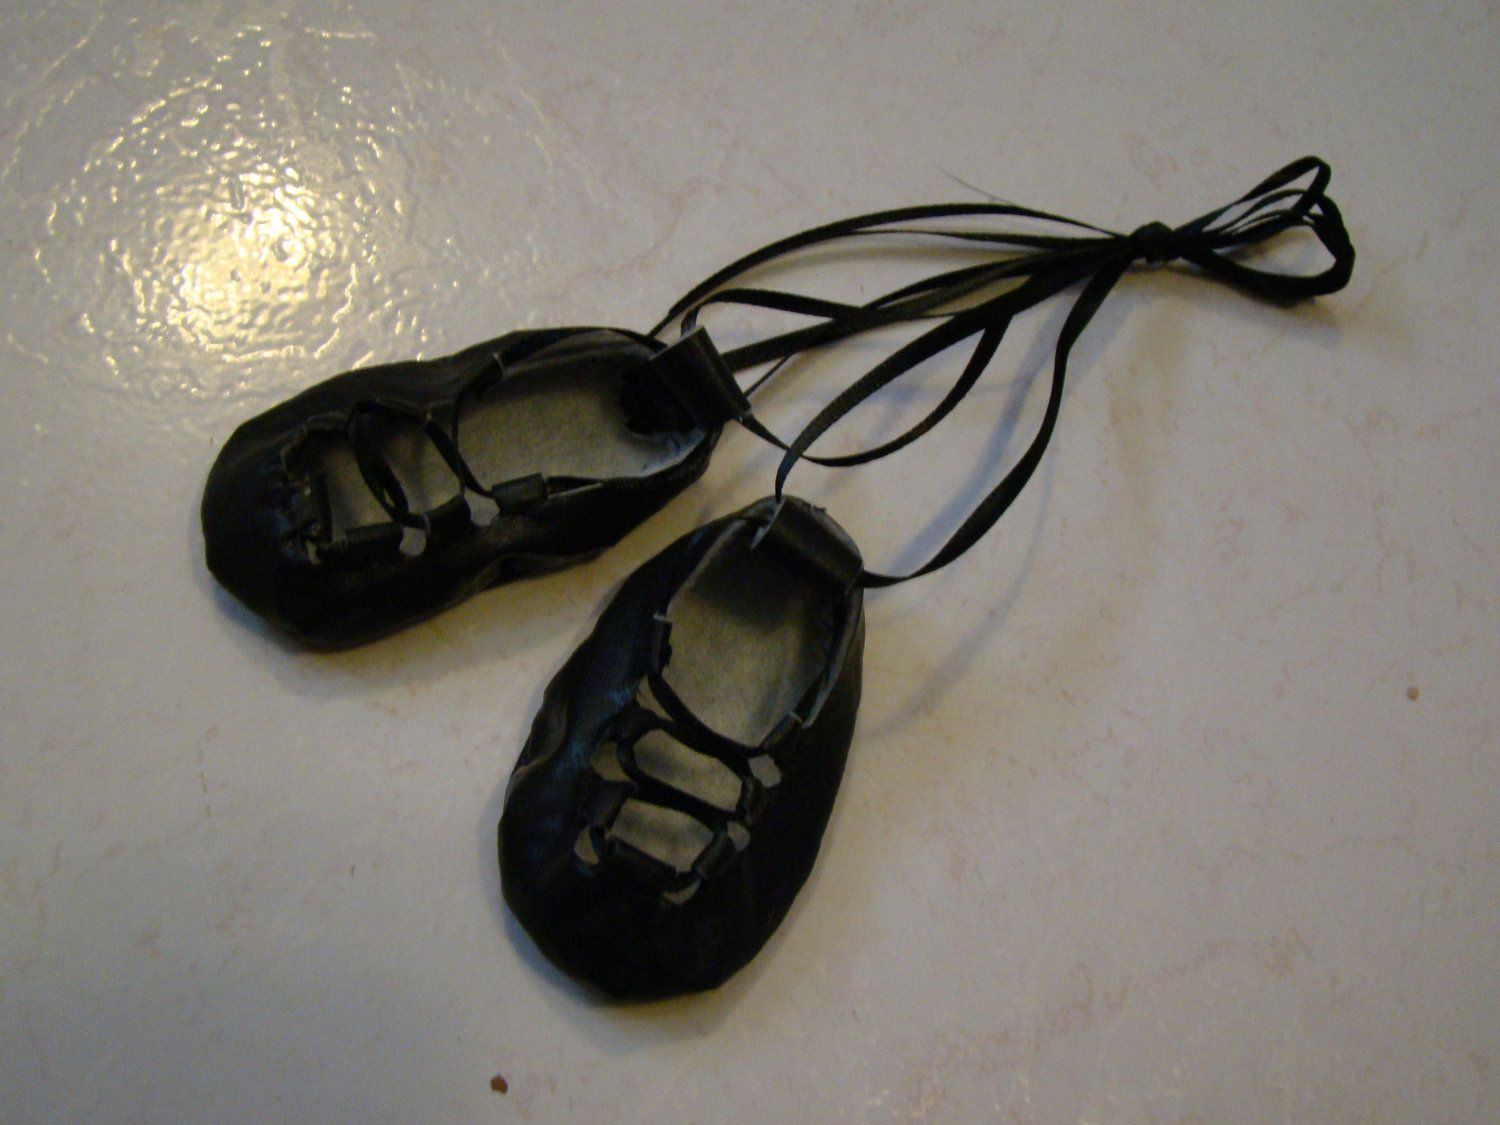 Irish step dance shoes for 1821 dolls by ImagiFaire on Etsy, $12.00